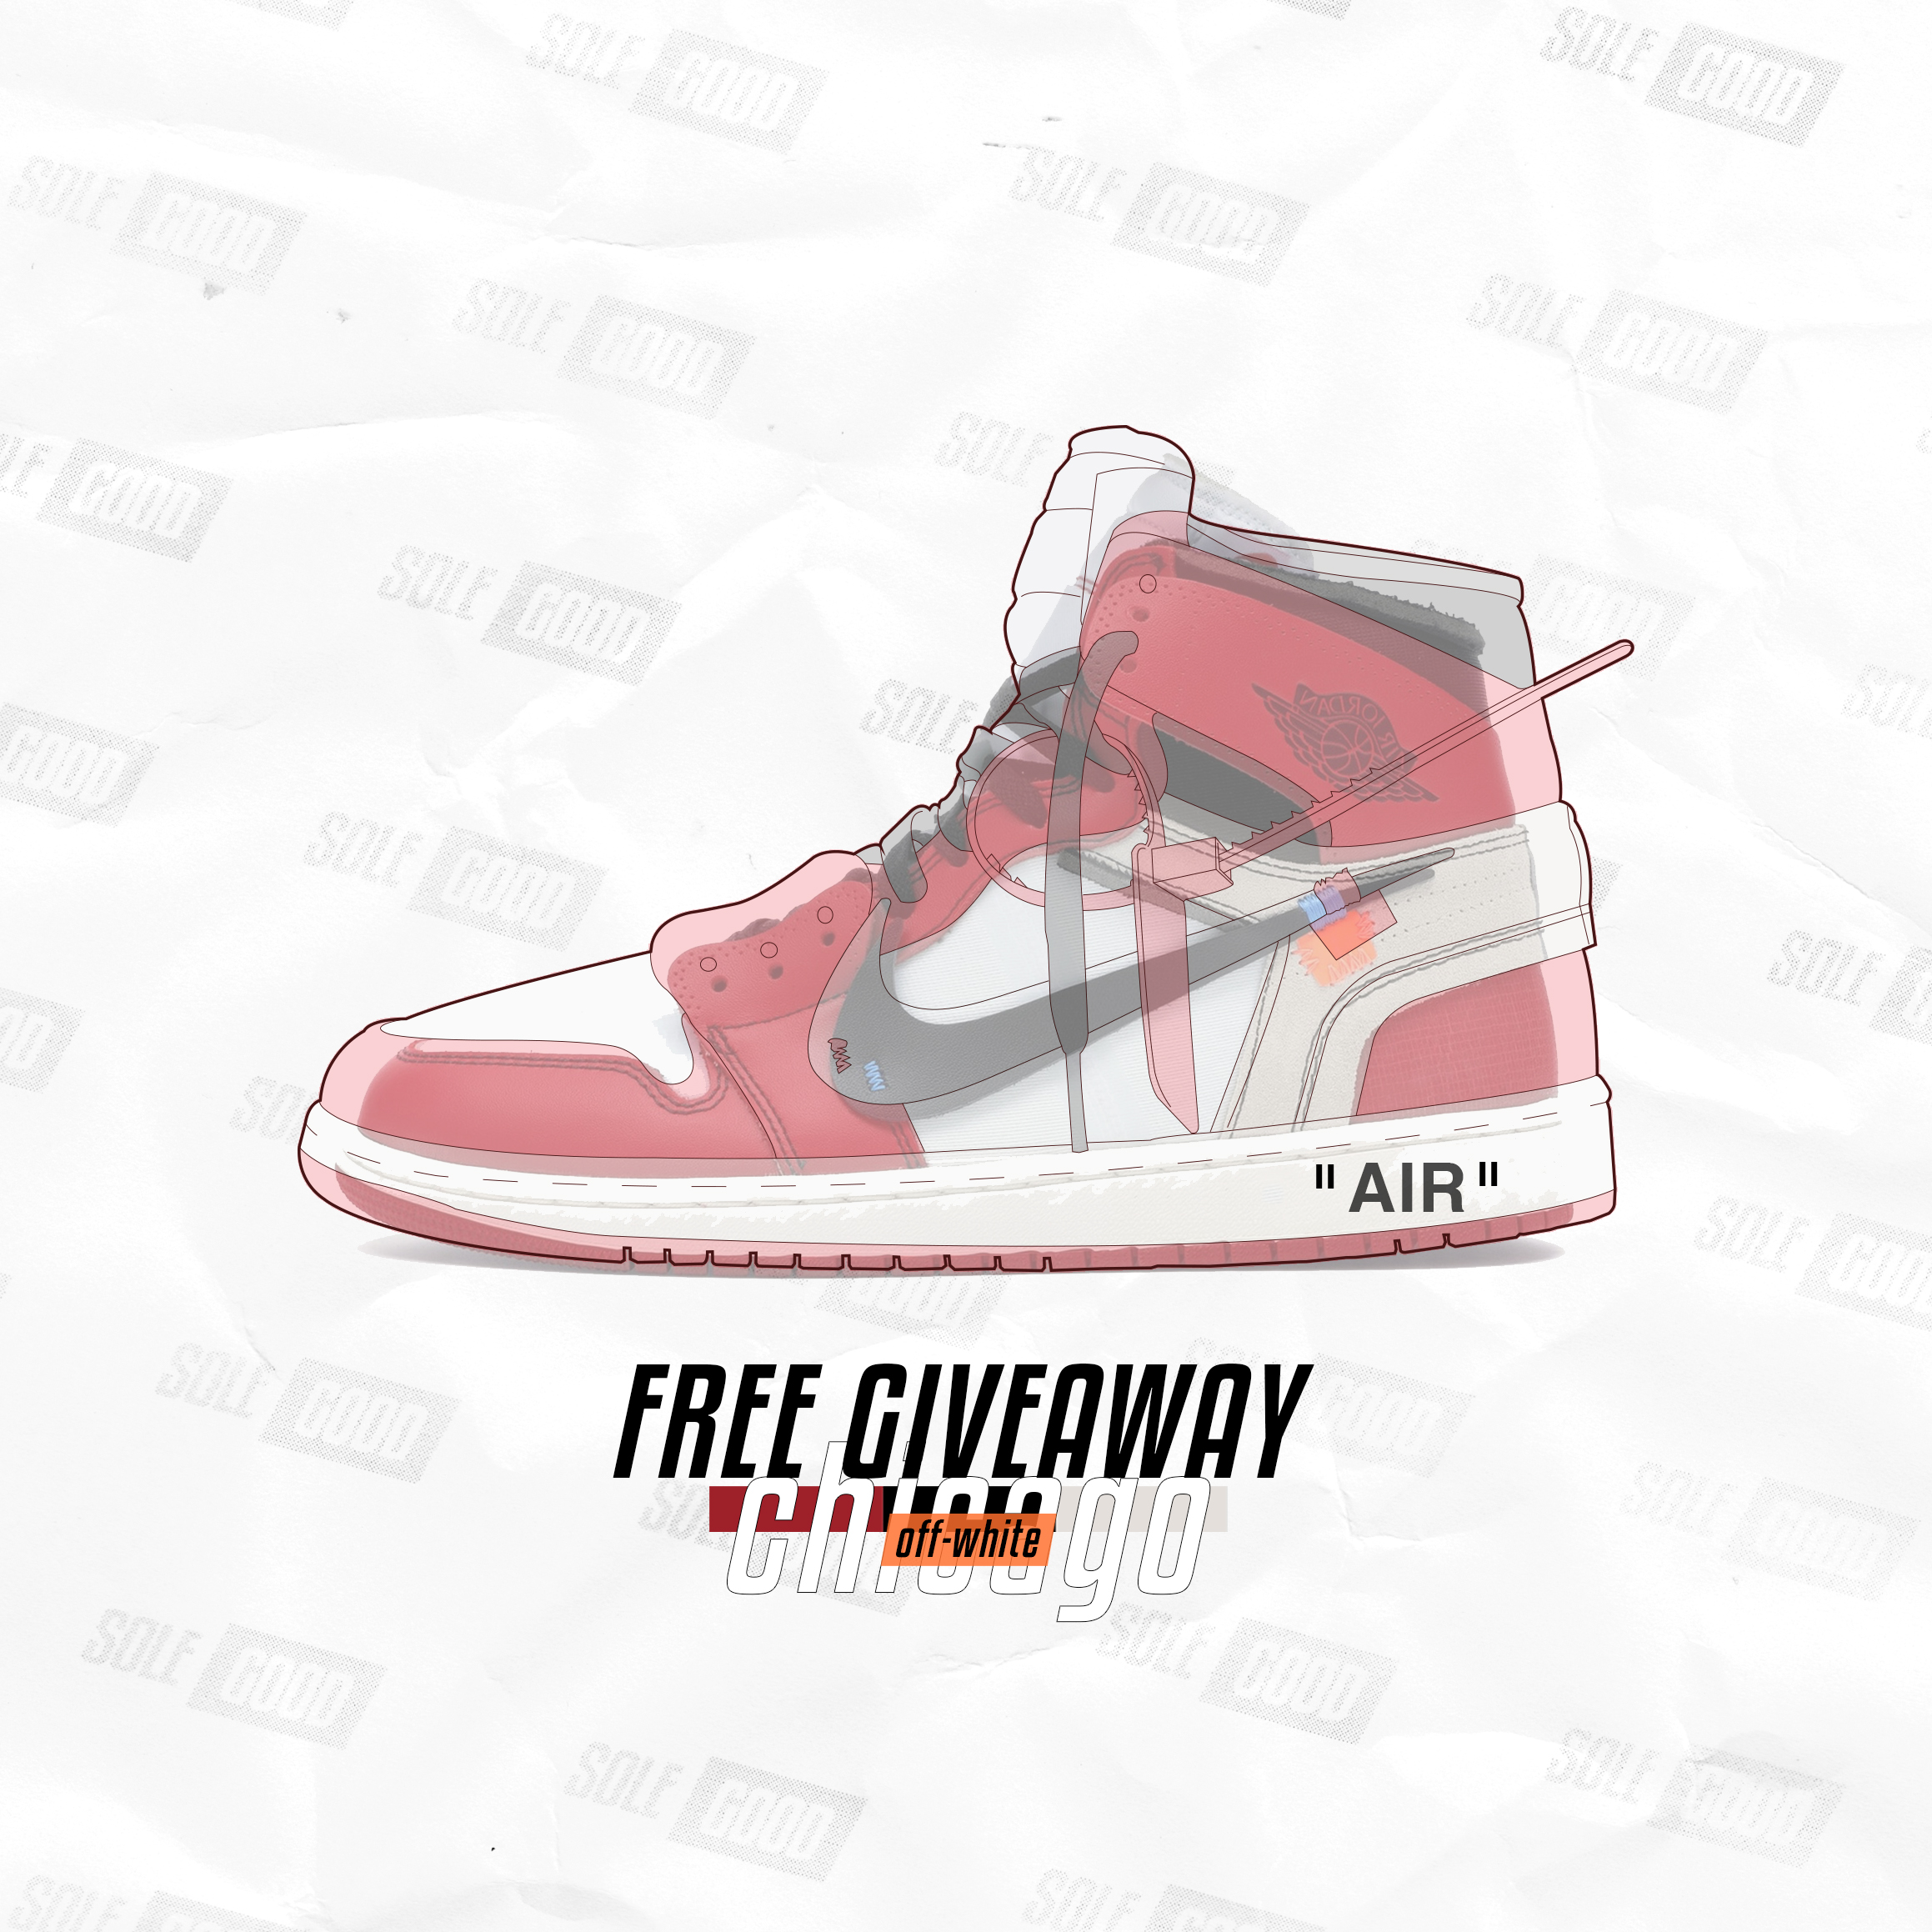 - We are GIVING AWAY a brand new pair of NIKE x OFF-WHITE THE TEN: JORDAN 1 CHICAGO, size 10 FOR FREE to ONE lucky SoleGood 5 ticket holder.—How to Enter:Anyone who purchases a SoleGood 5 ticket(Hyperstrike, Quickstrike, Physical, VIP or door ticket) will be automatically entered into the giveaway. You can purchase as many tickets as you want to increase your chance, no maximum😉. Each ticket is uniquely numbered, we will draw a number via verified RANDOM.ORG live at 3 PM at SoleGood 5. The shoe is currently on the way to Edmonton from StockX, electronic receipt from StockX is available upon request. The prize will be given to the giveaway winner right after the draw. The whole process will be live streamed on Instagram via @sole_good.